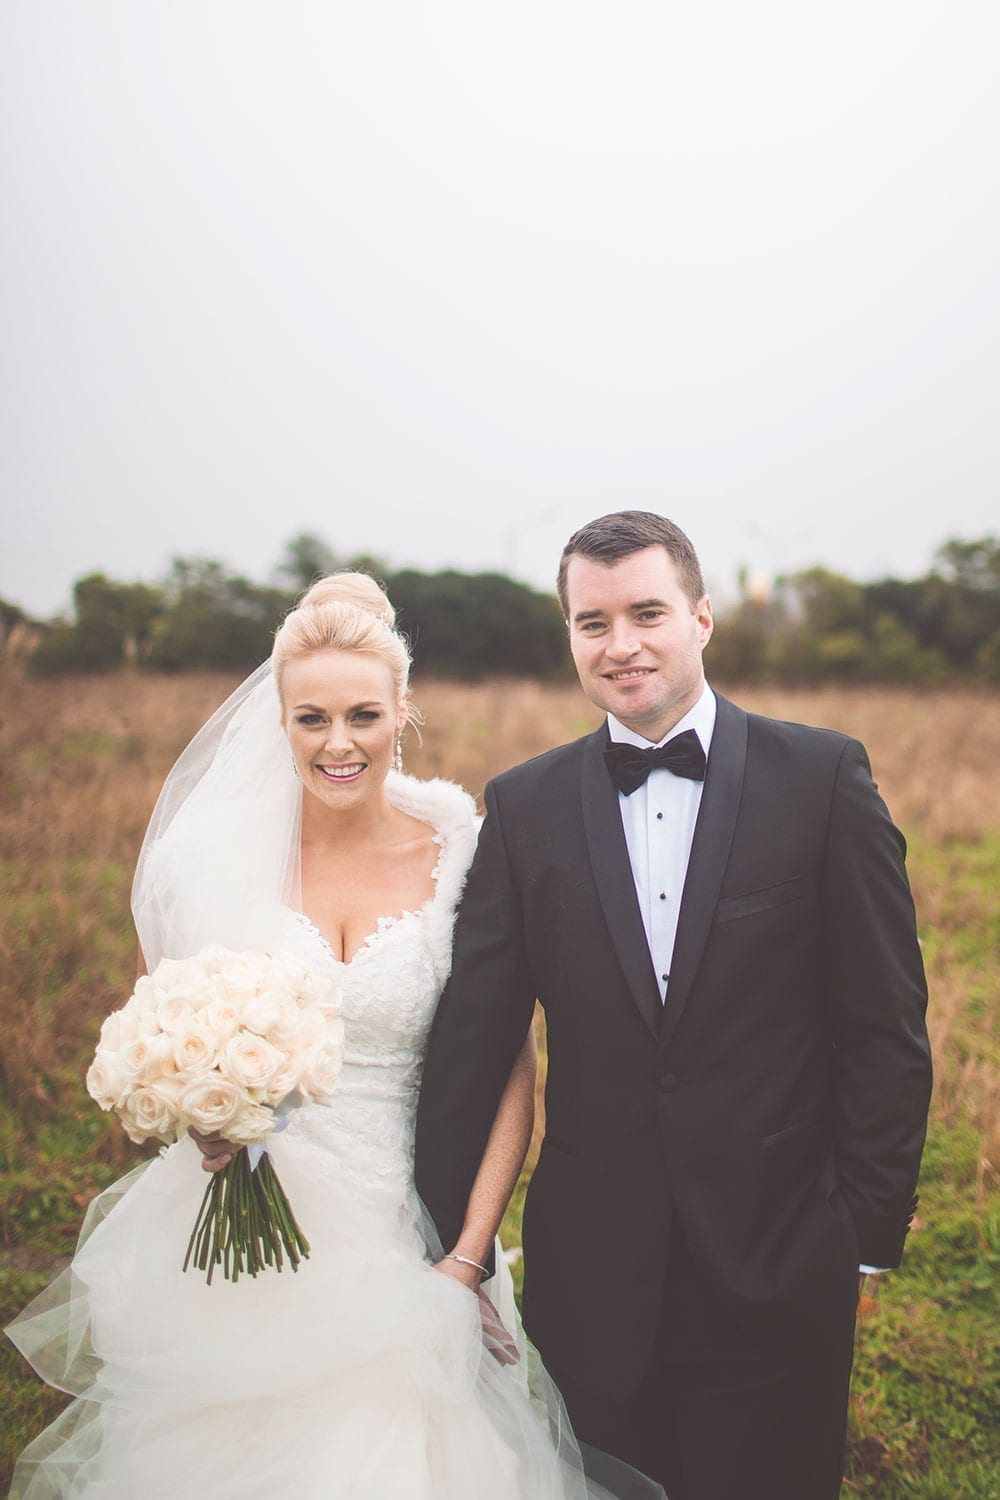 Real Weddings | Vinka Design | Real Brides Wearing Vinka Gowns | Kristen and Ben outdoors in field holding hands